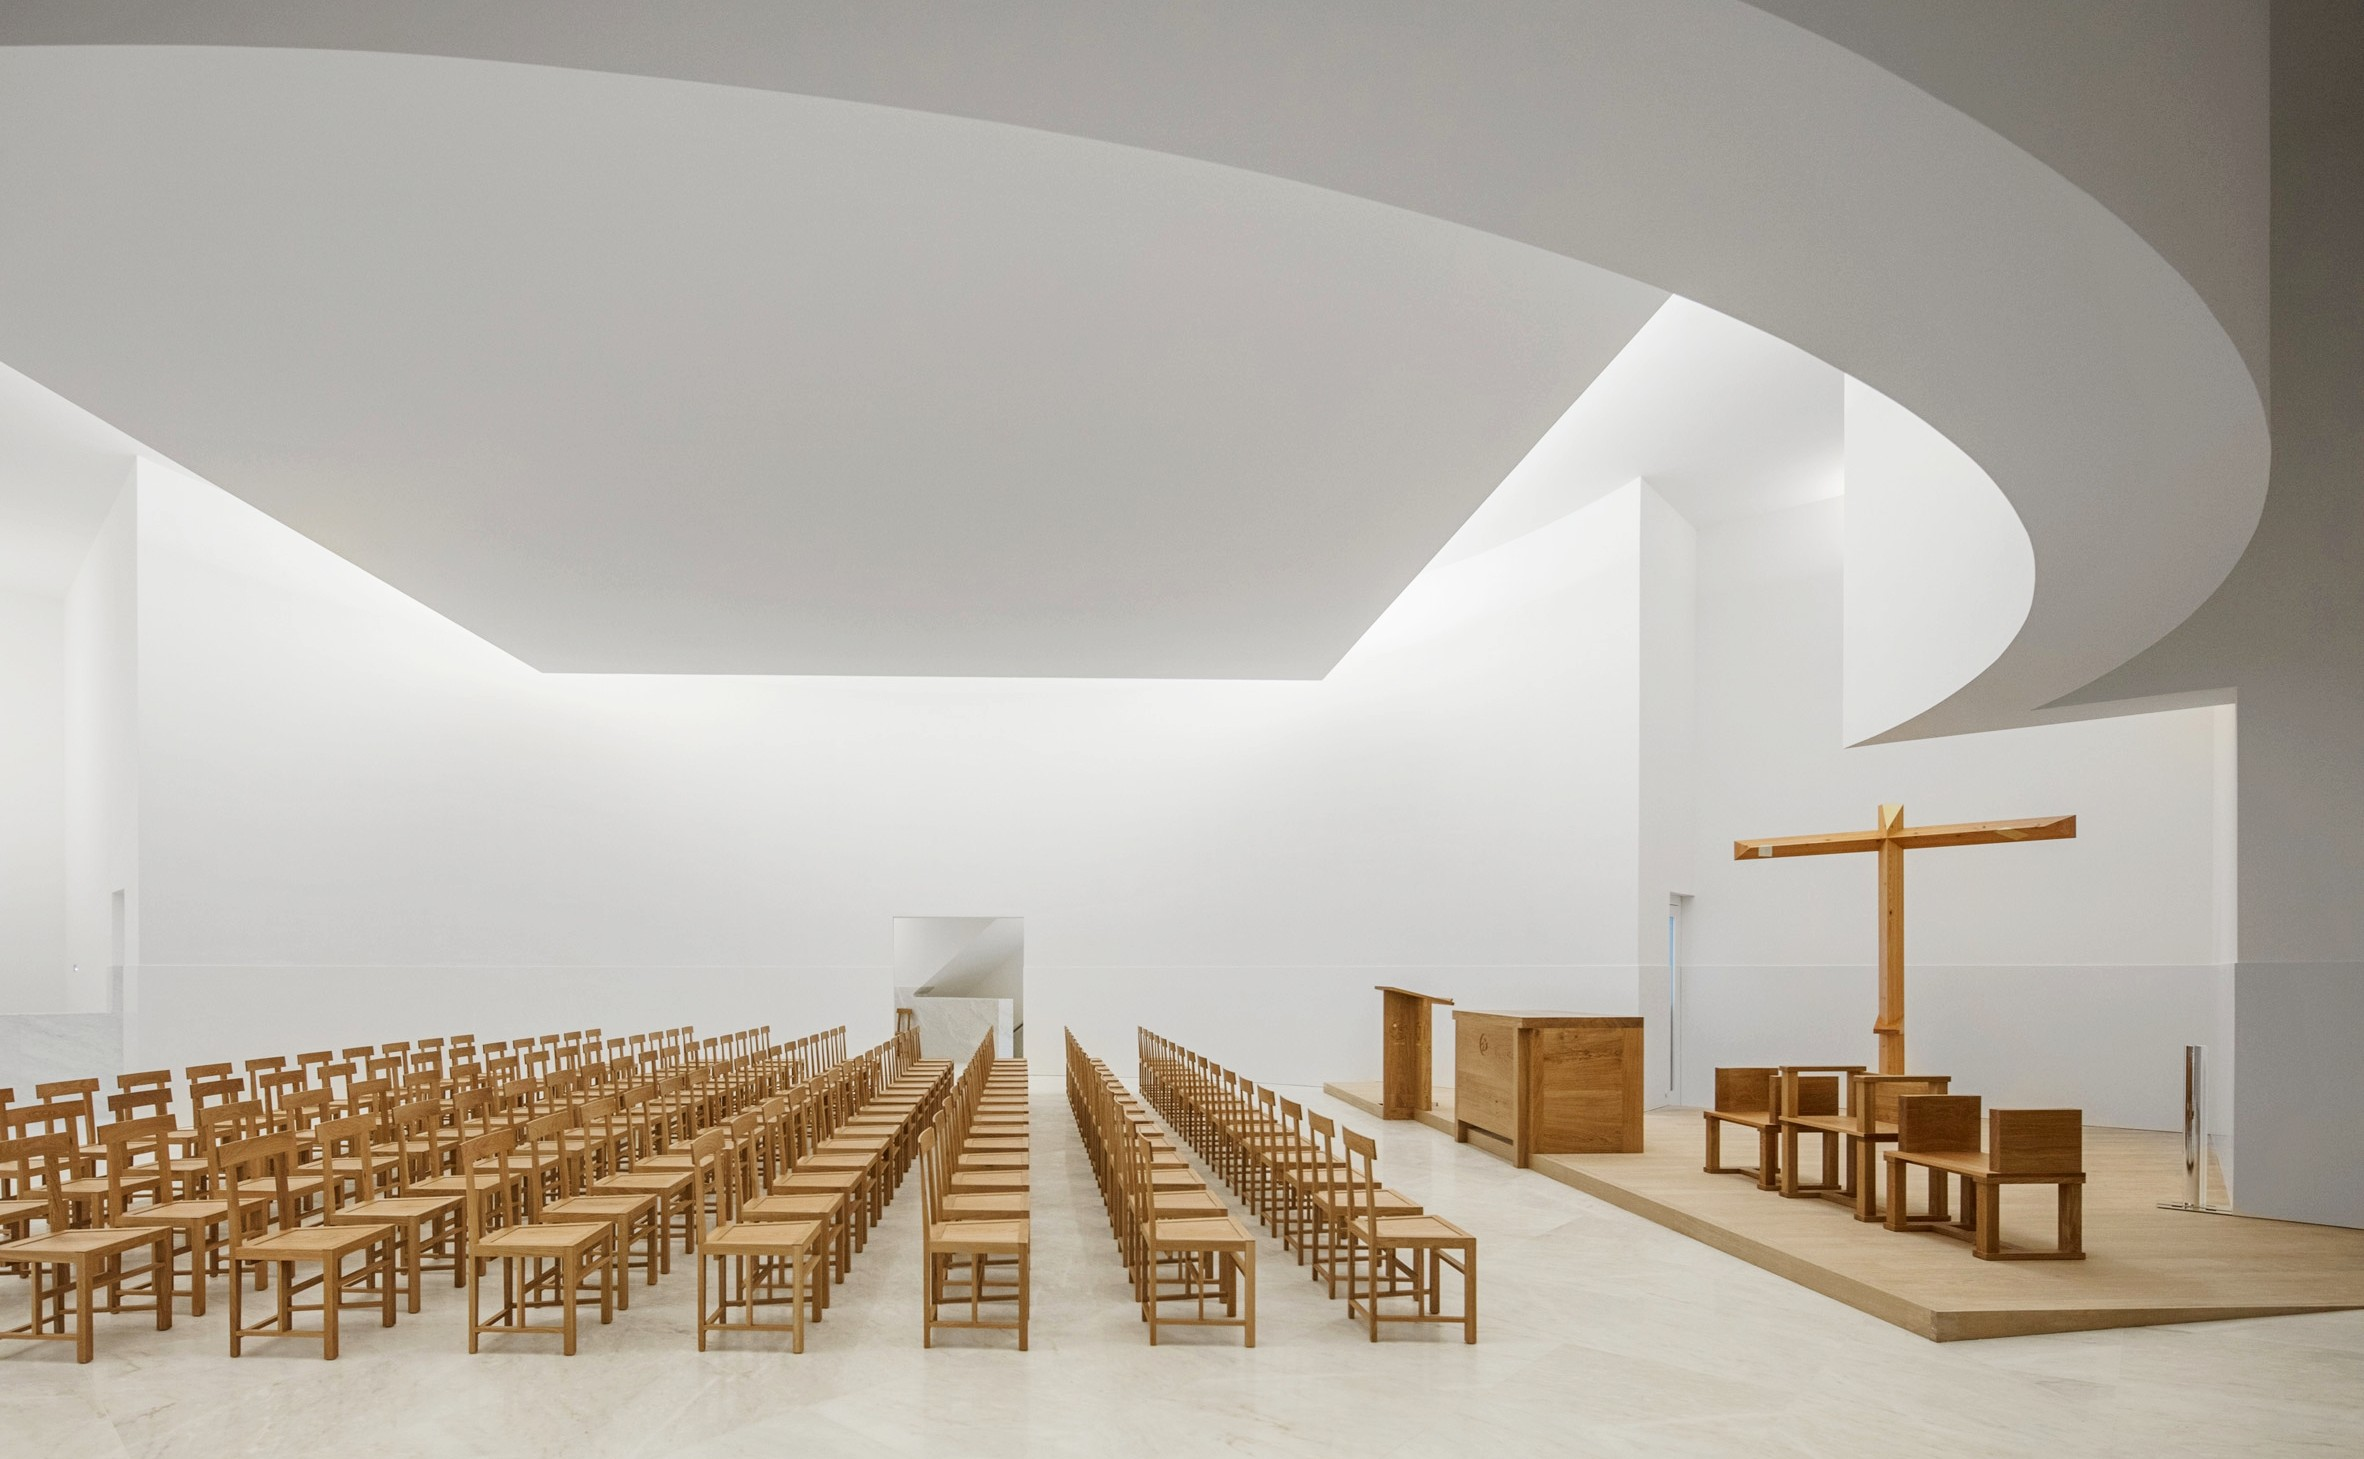 xxxnew-church-saint-jacques-alvaro-siza-architecture-public-and-leisure-worship-france_dezeen_2364_col_12